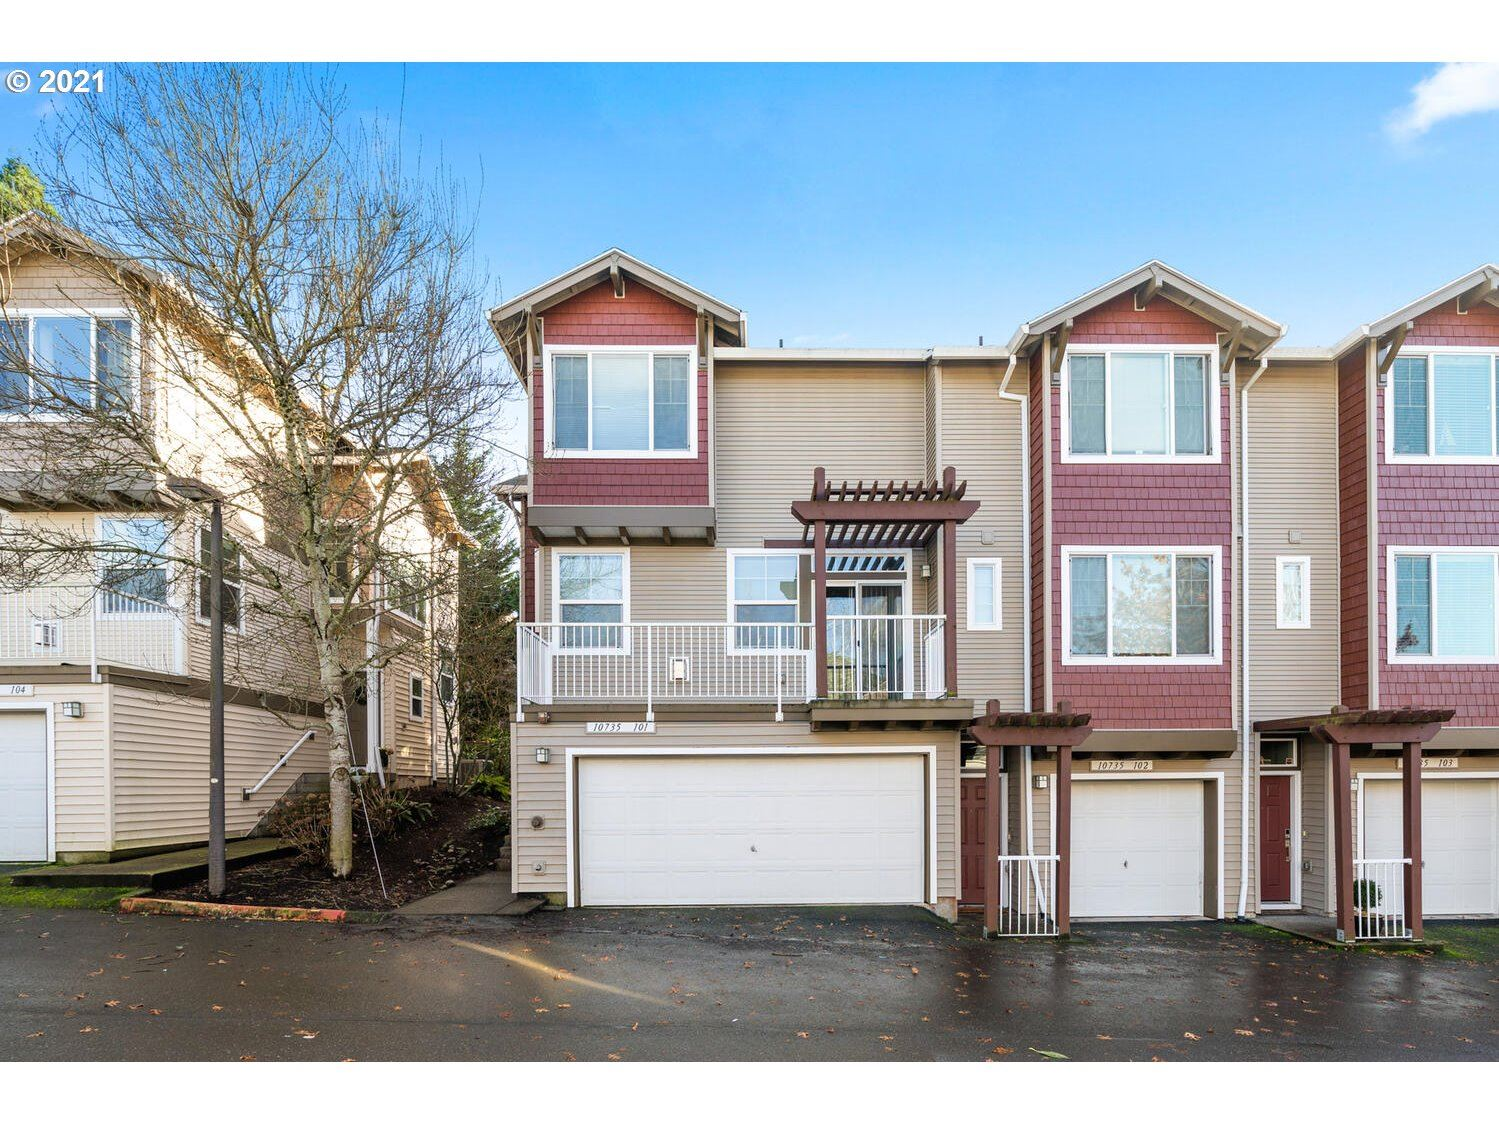 10735 SW CANTERBURY LN #101, Tigard, OR 97224 - MLS#: 21095100